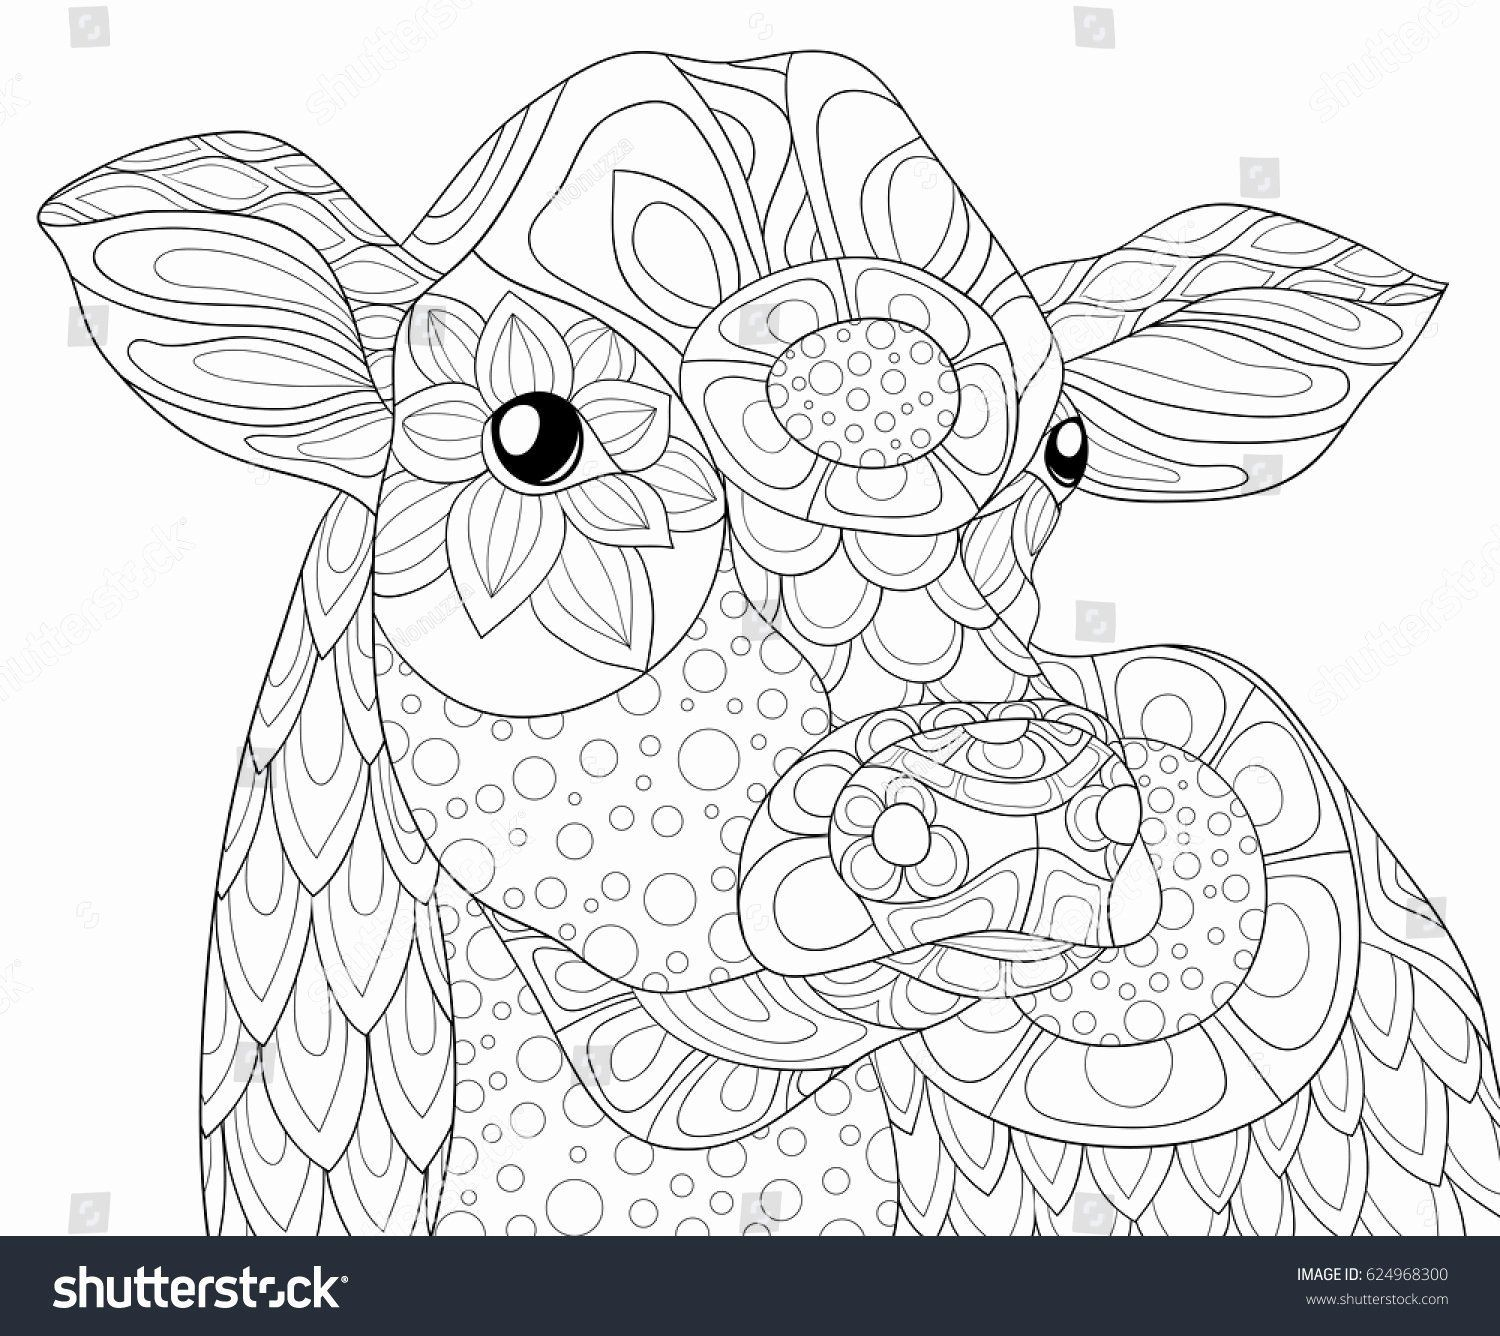 Farm Animals For Coloring Beautiful Cow Coloring Pages Farm Animals For Coloring Beauti In 2020 Cow Coloring Pages Farm Animal Coloring Pages Mandala Coloring Pages